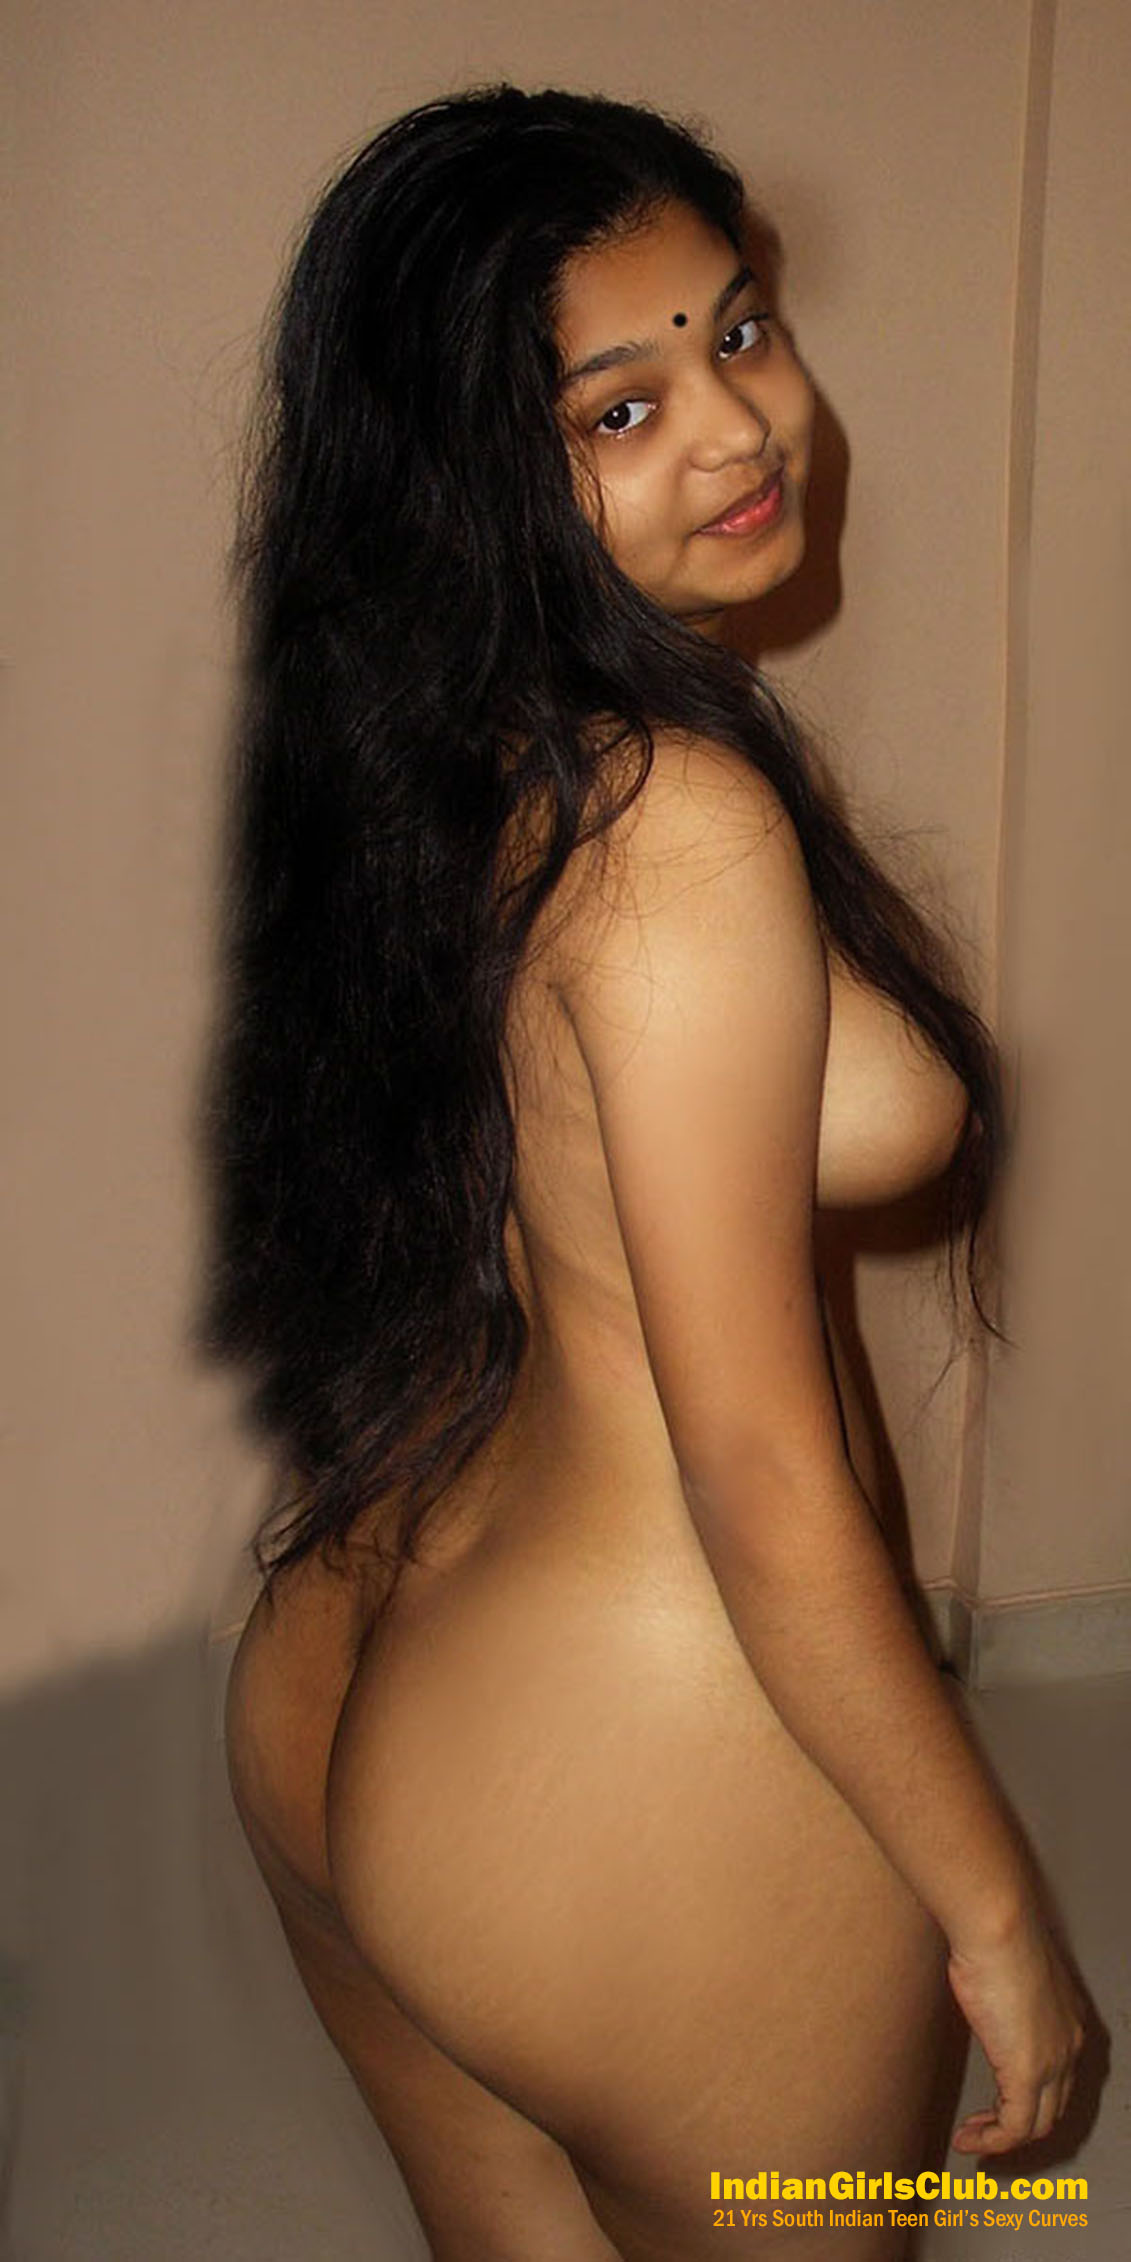 Phrase Nude pakistani girls and women image join